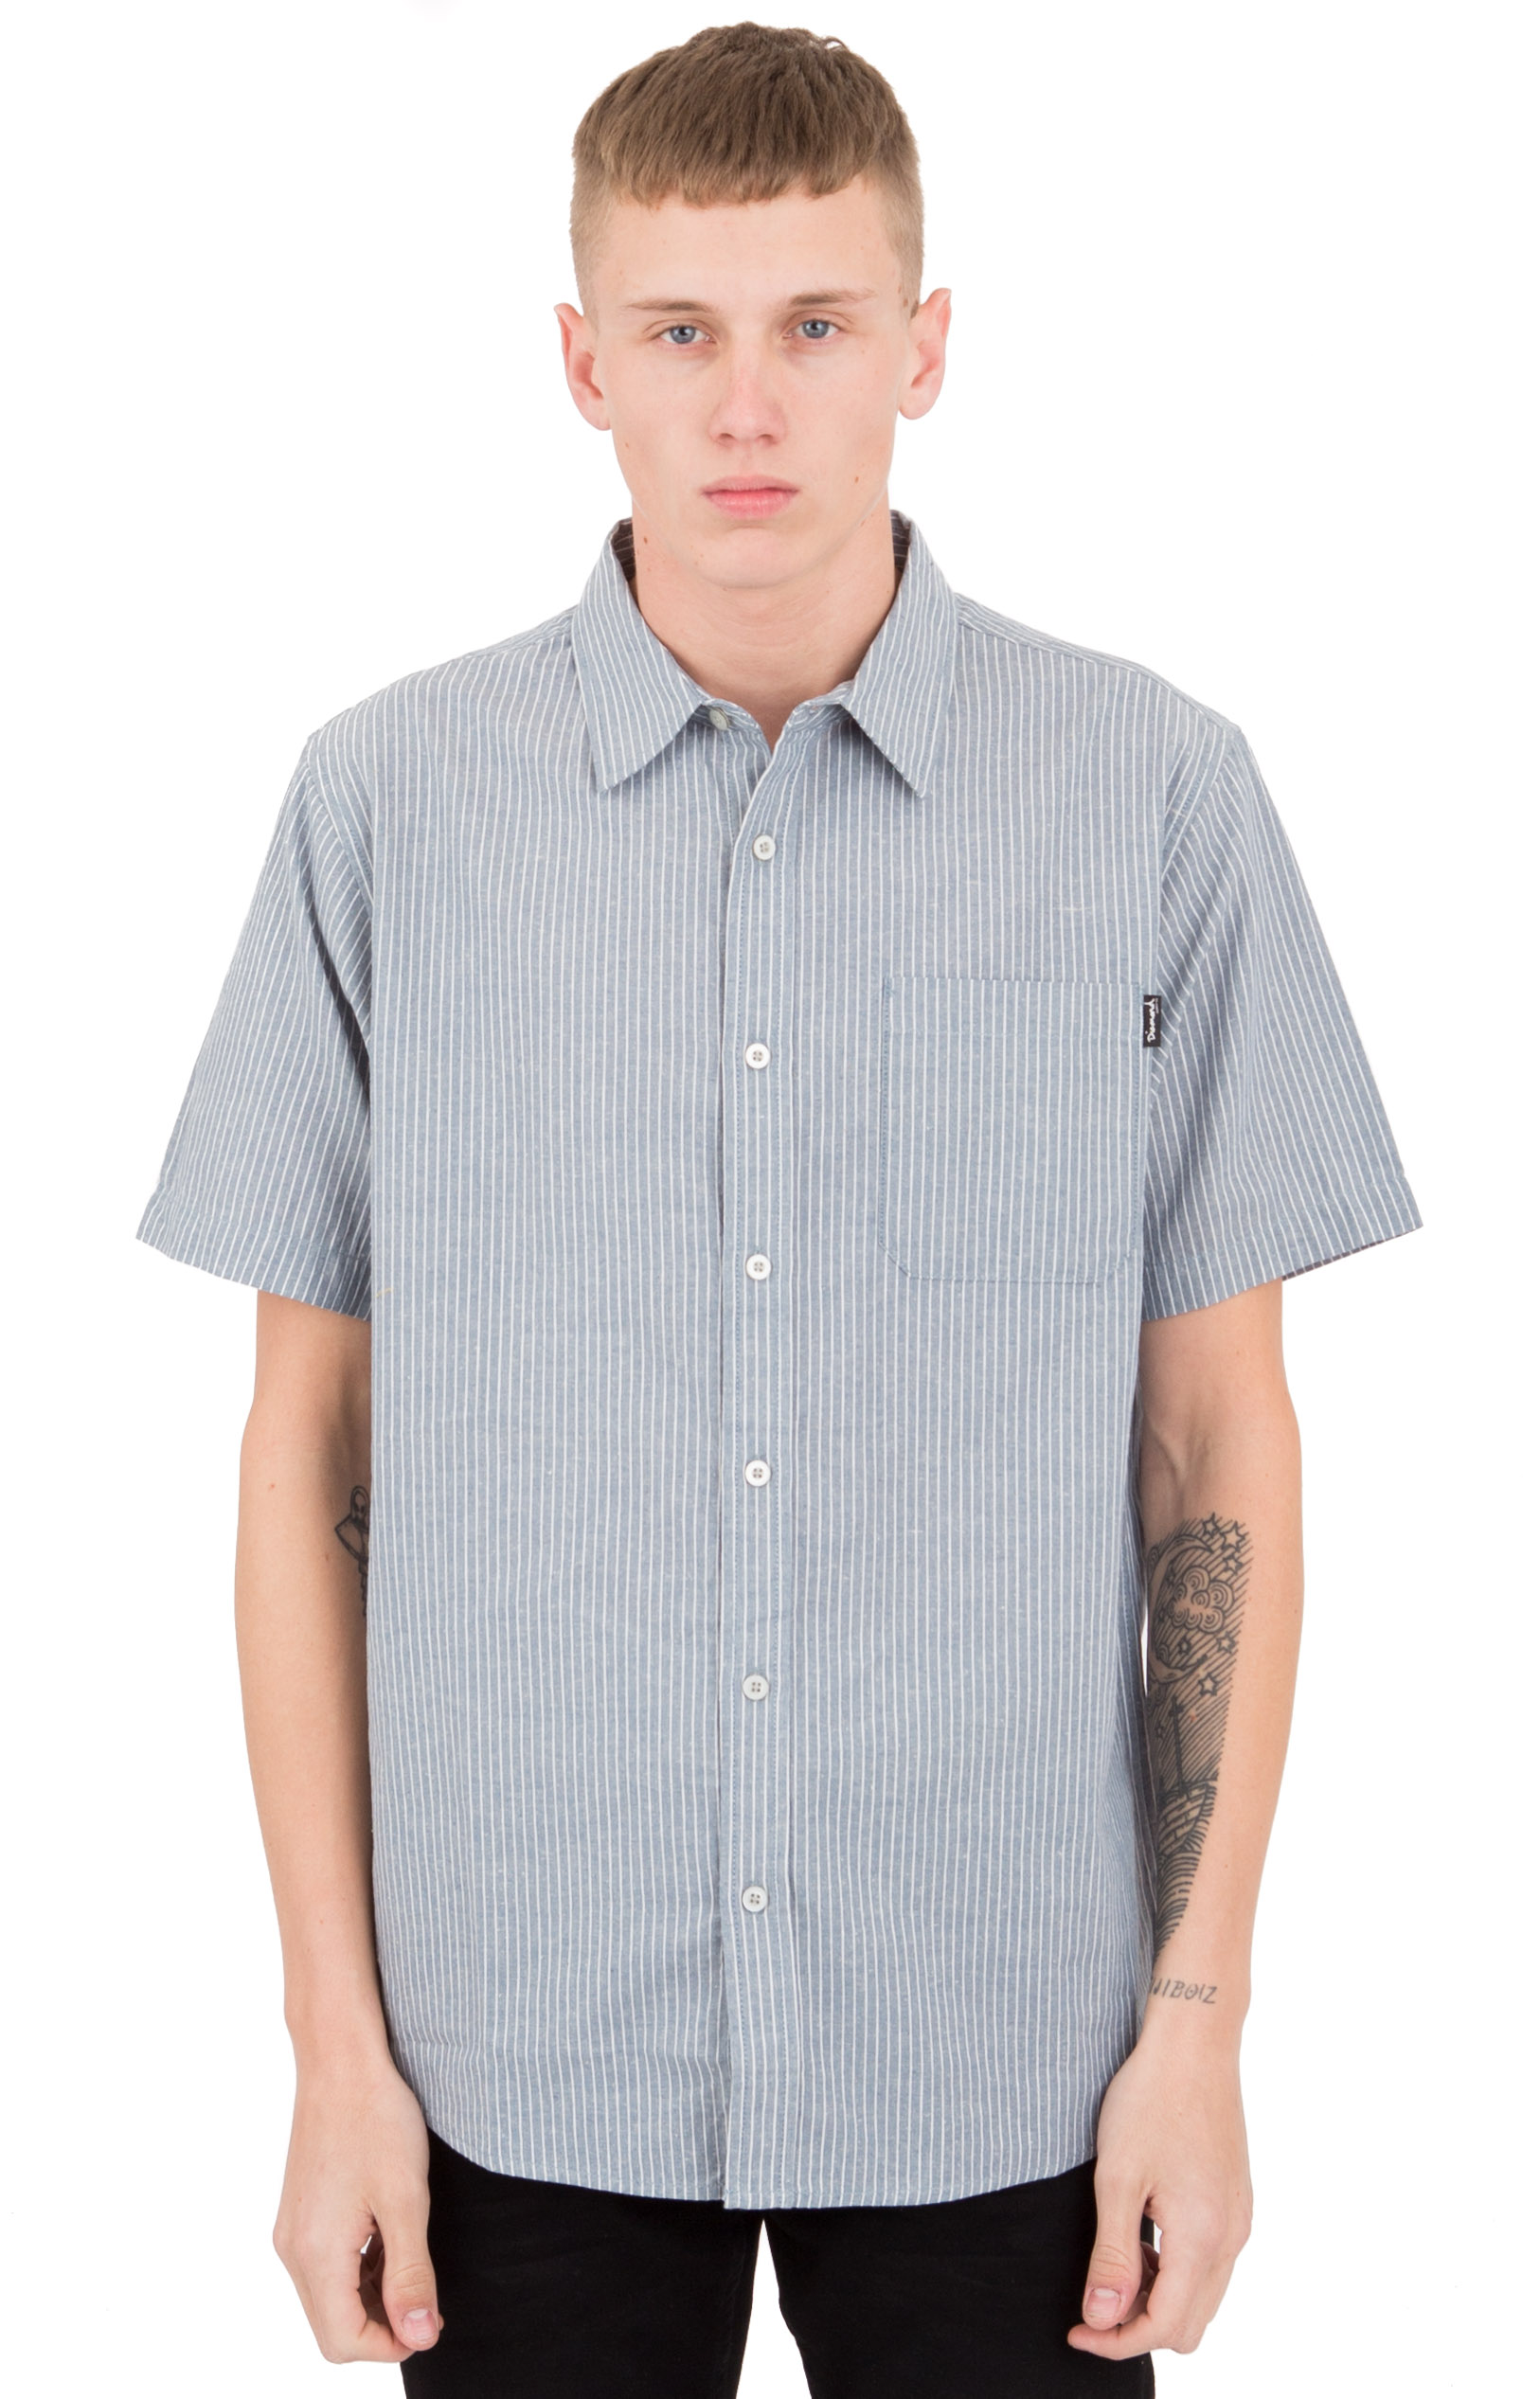 Striped S/S Woven Button-Up Shirt - Blue